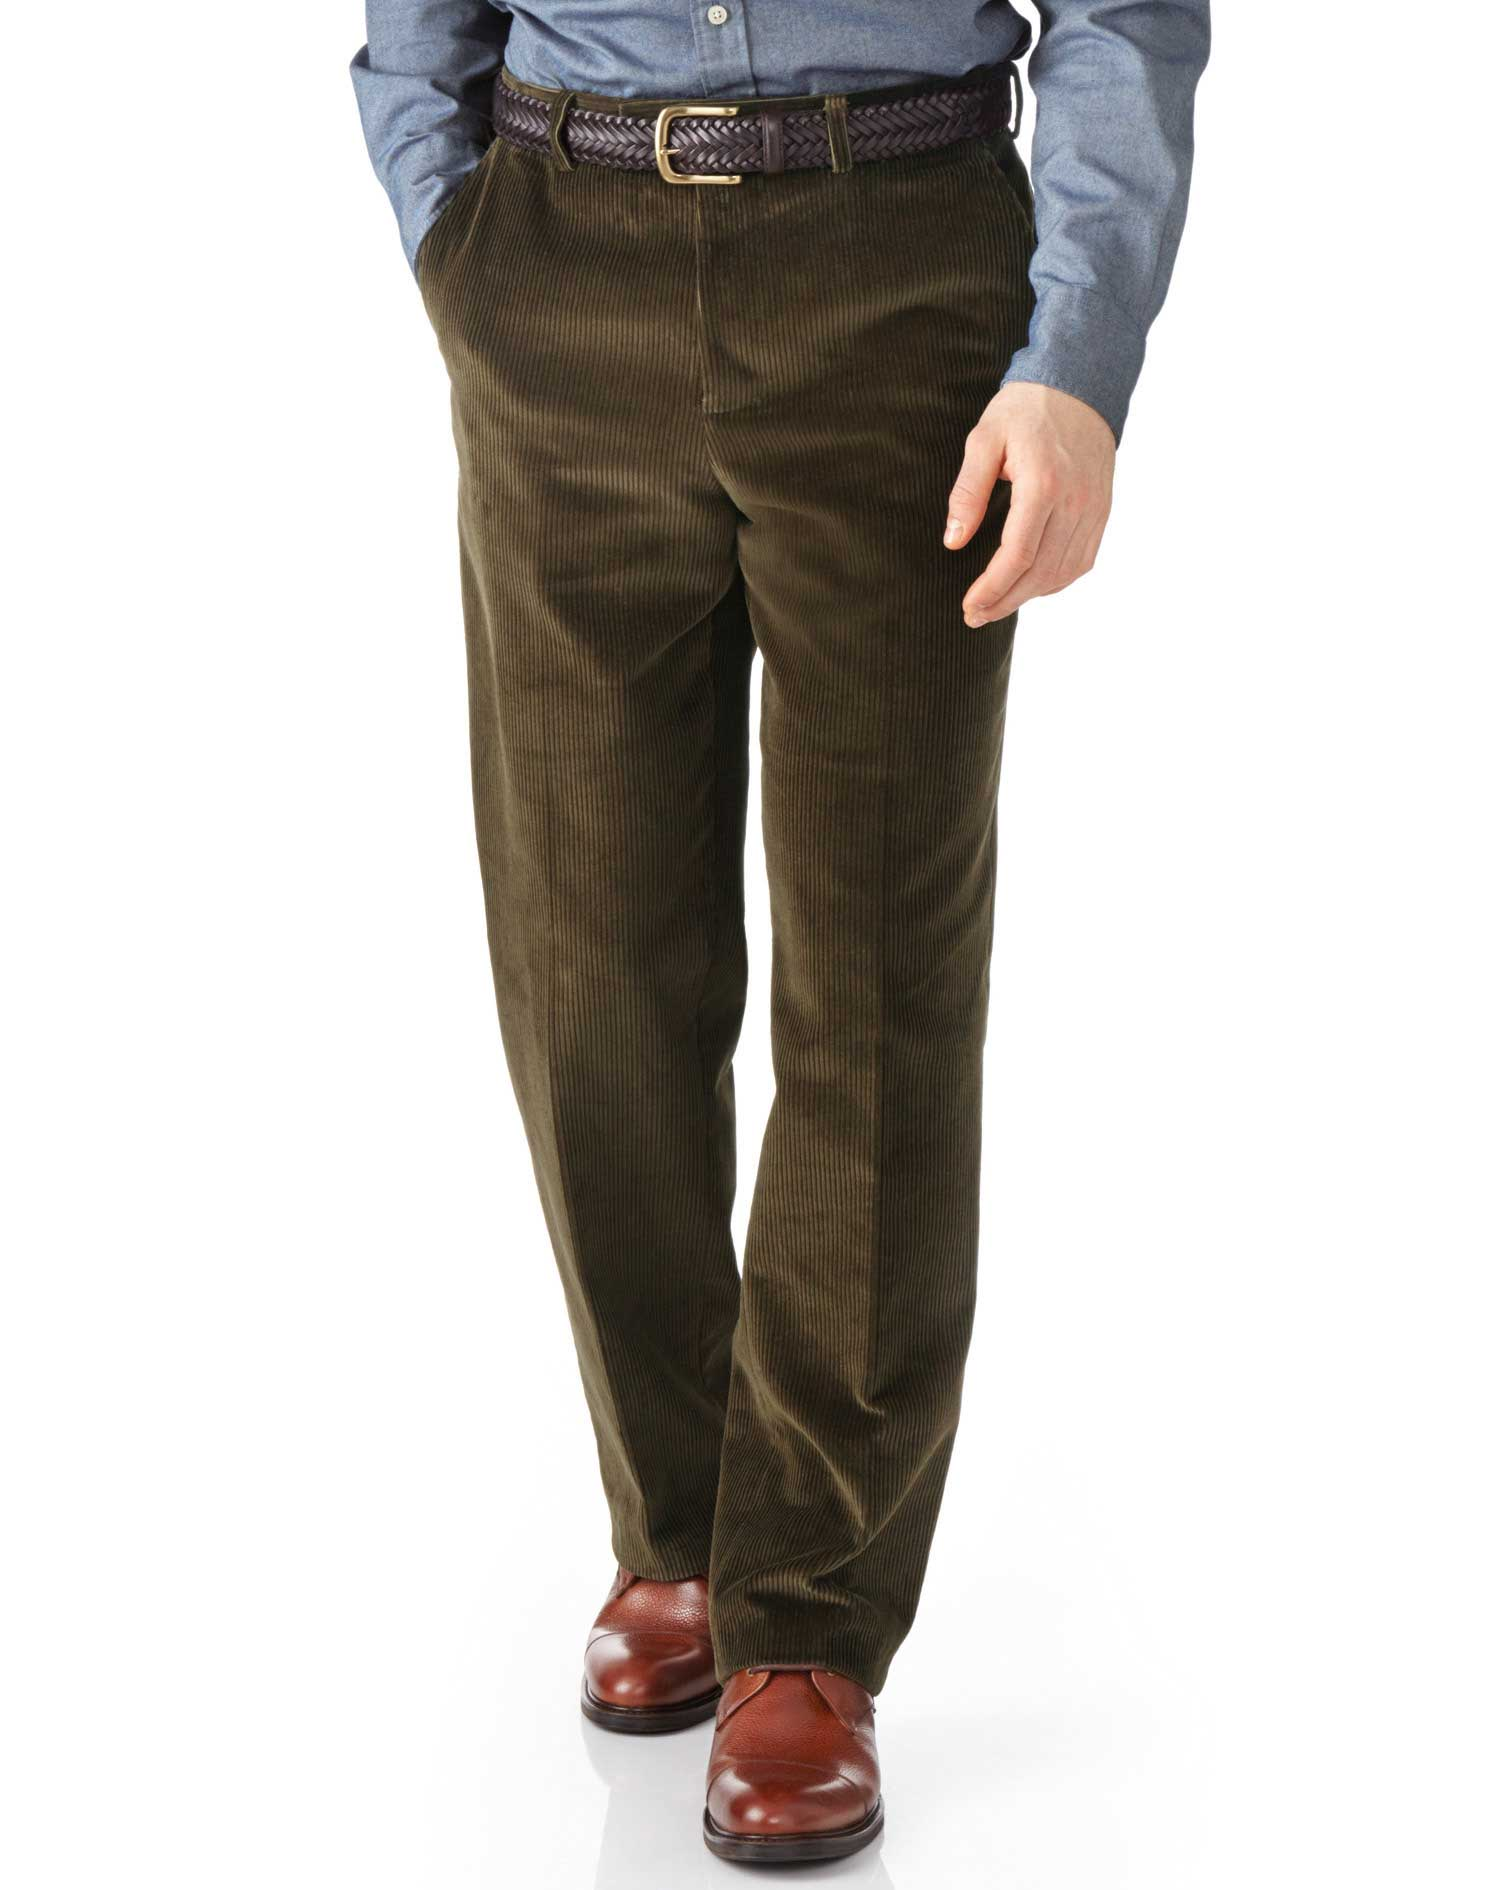 Olive Classic Fit Jumbo Cord Trousers Size W36 L30 by Charles Tyrwhitt